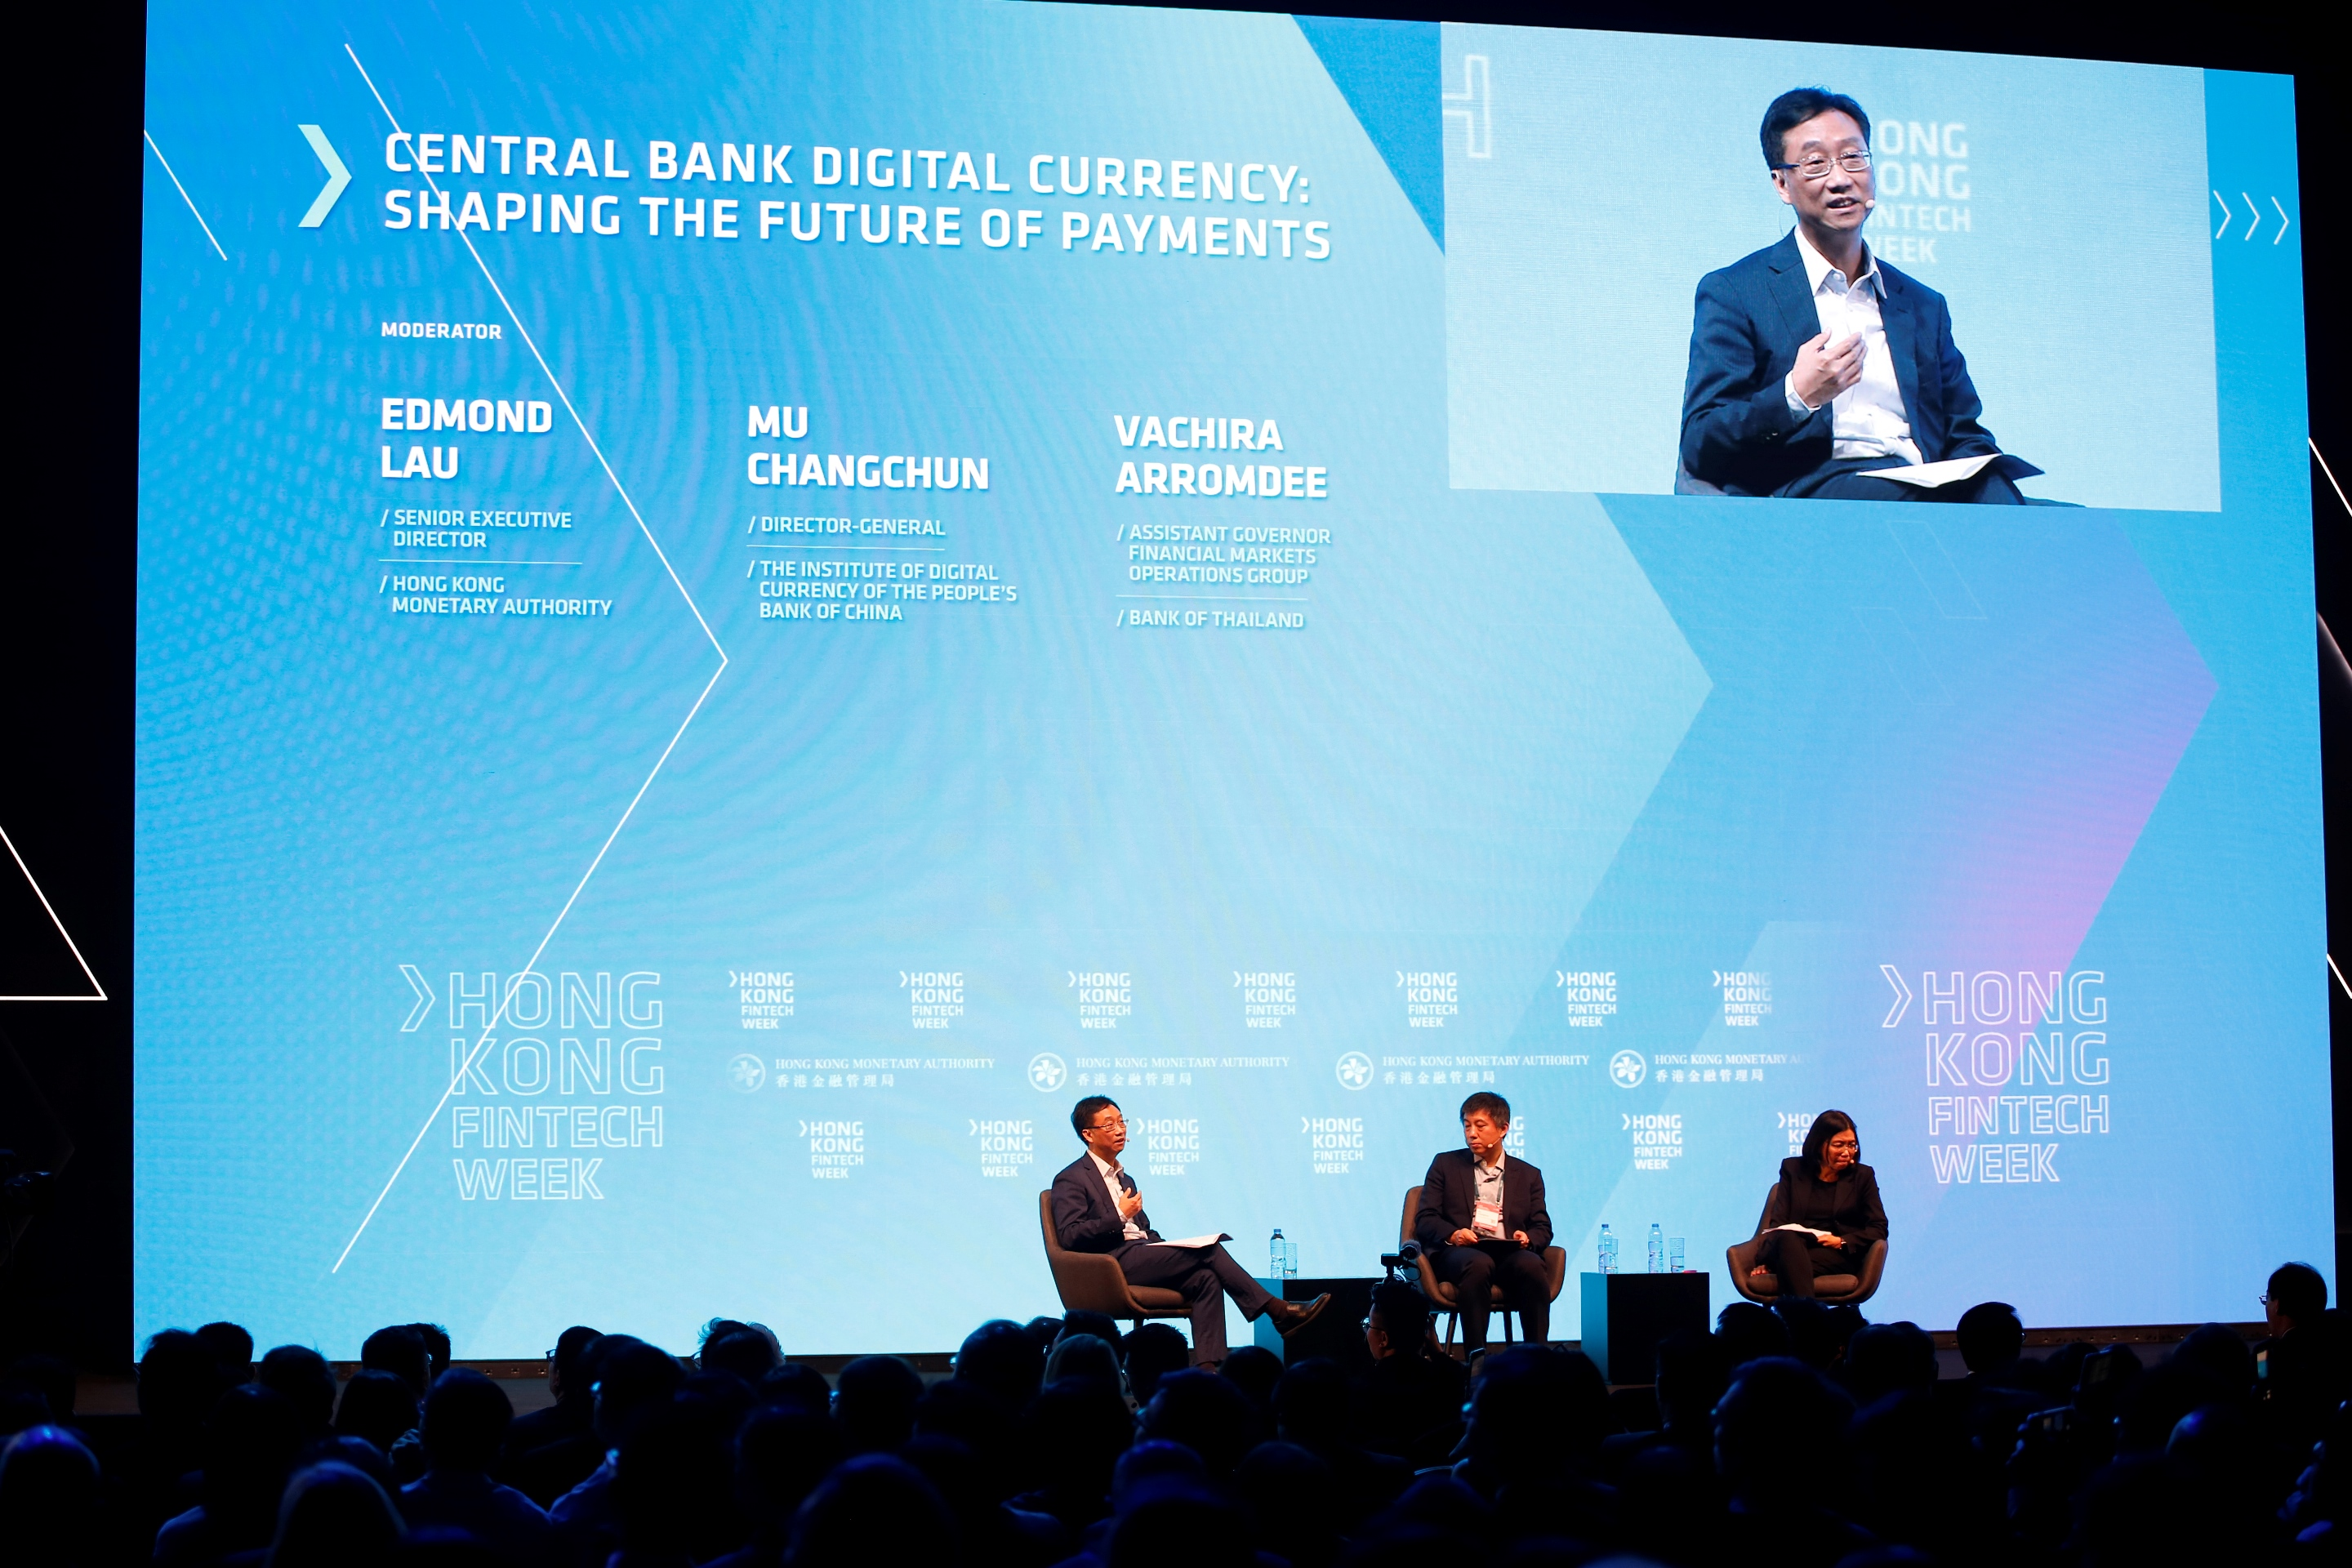 Mr Edmond Lau, Senior Executive Director of the HKMA, moderates a panel discussion on how Central Bank Digital Currency could shape the future of cross-border payments.